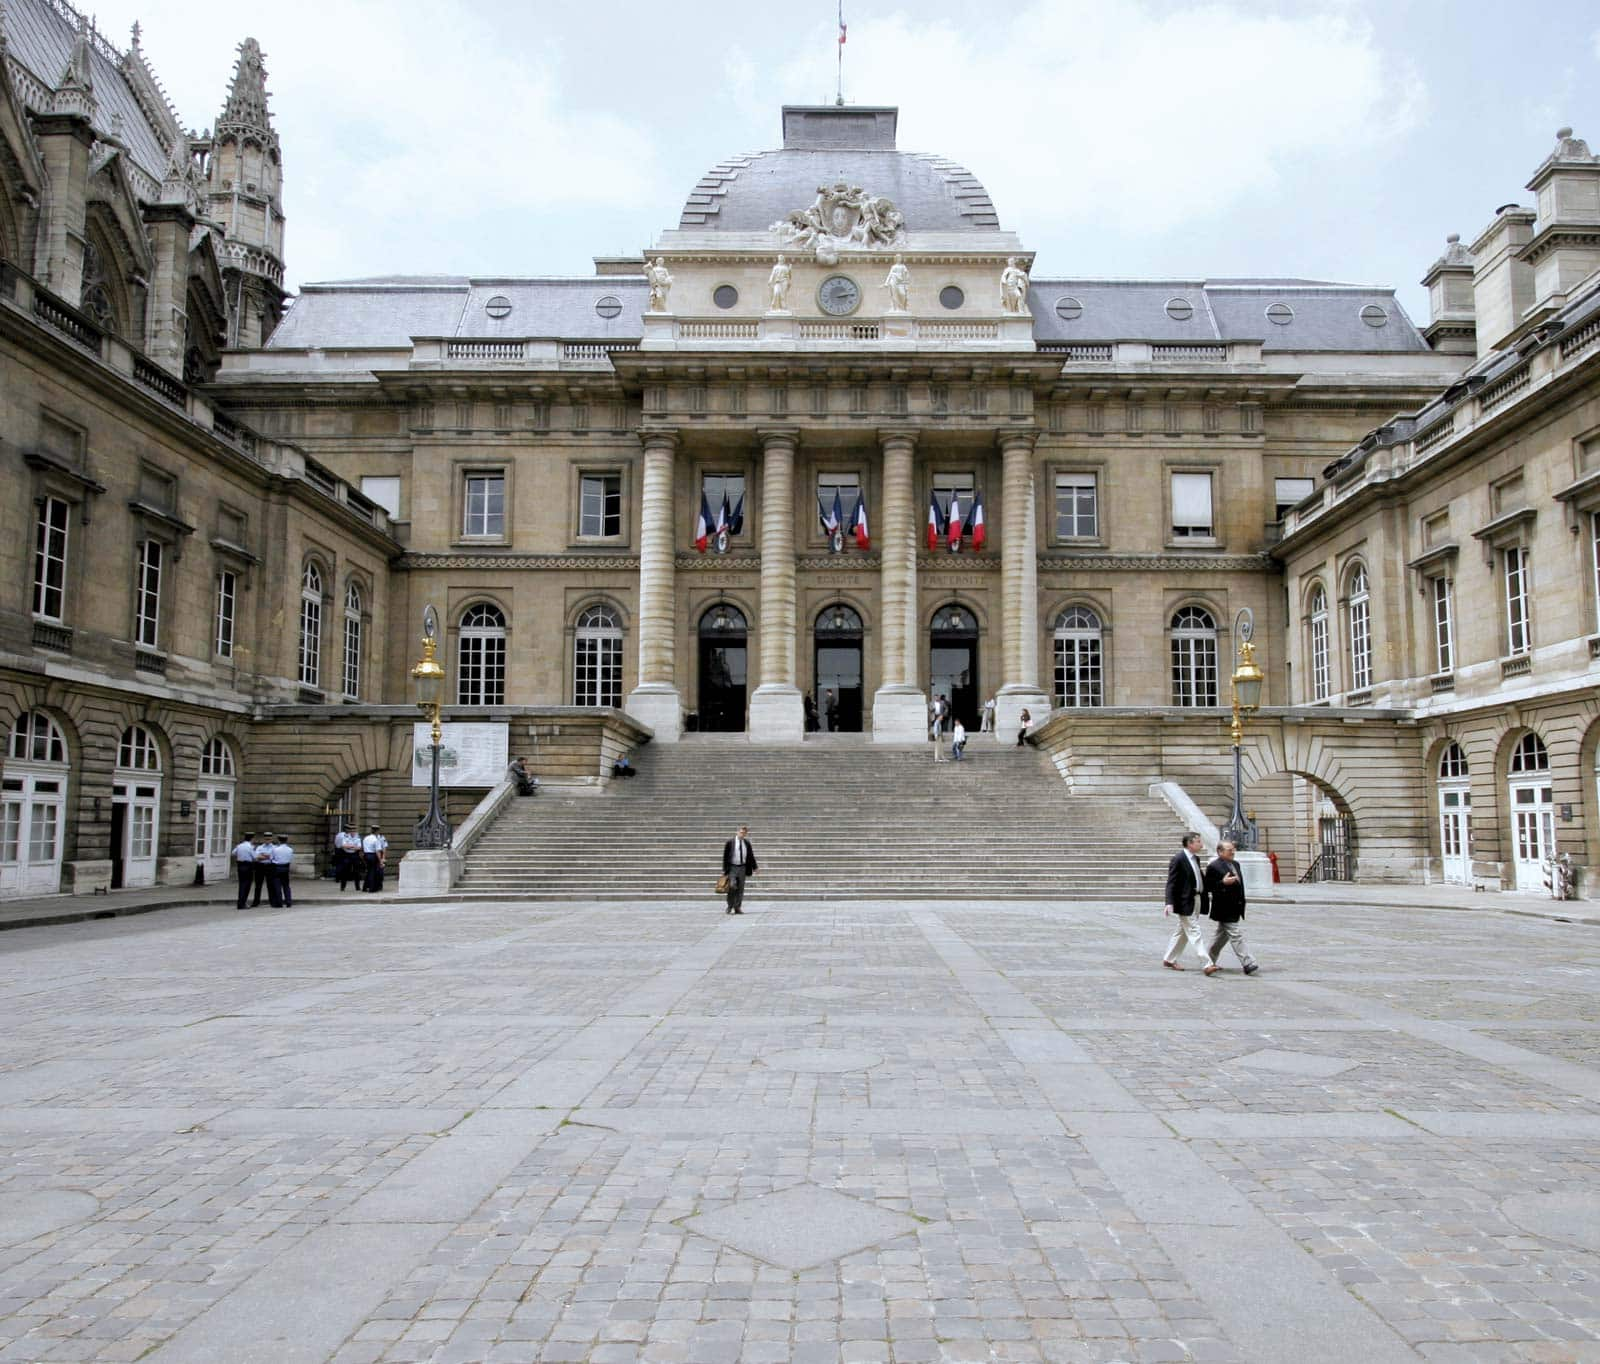 THE COURT OF CASSATION, COMMERCIAL, FINANCIAL AND ECONOMIC CHAMBER